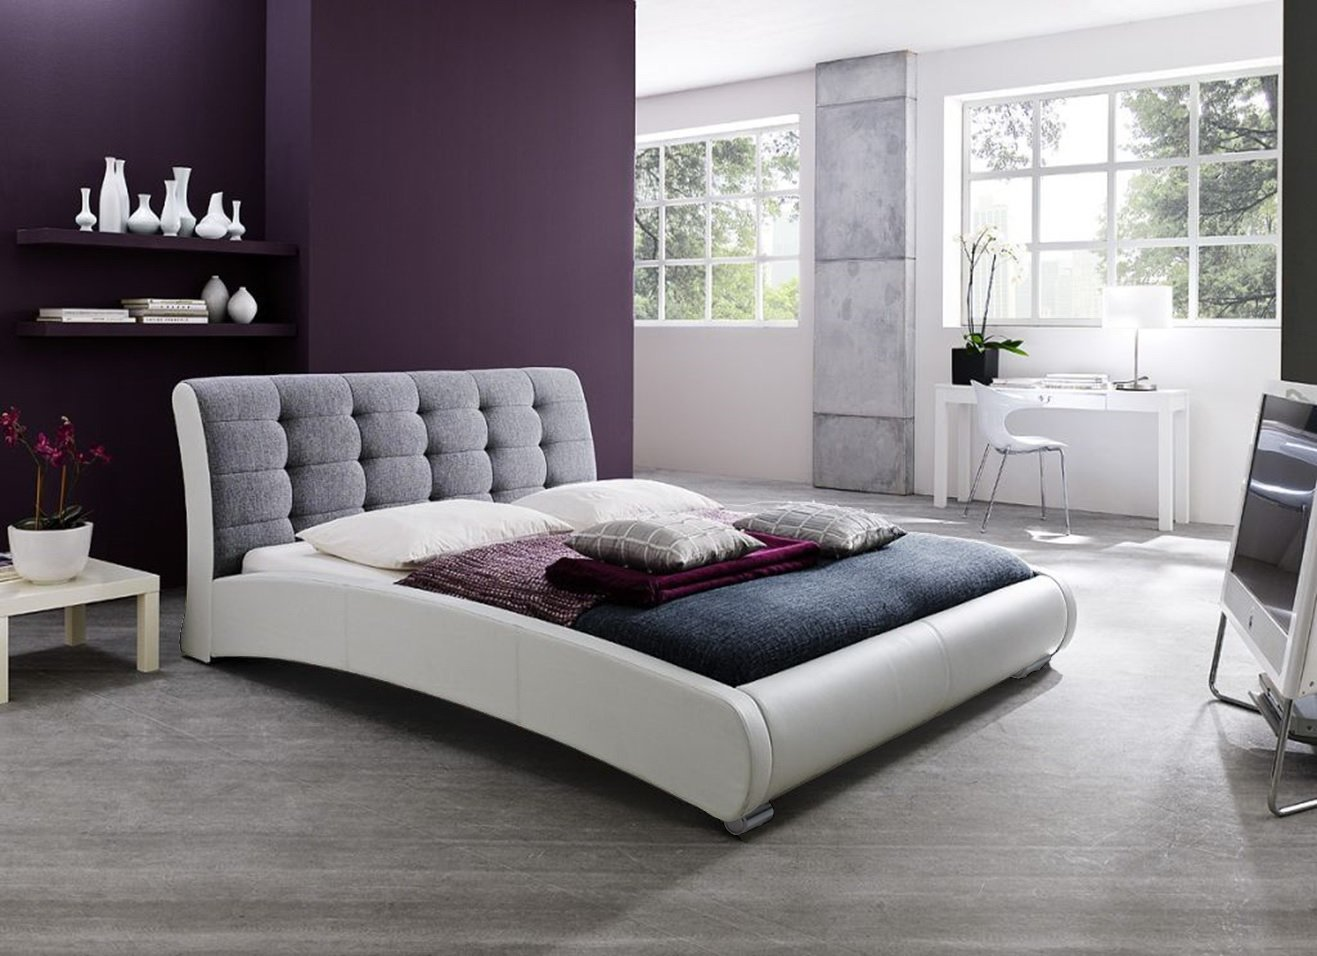 Baxton Studio Guerin Contemporary White Faux Leather Fabric Two Tone Upholstered Grid Tufted Platform Bed, Queen, Grey